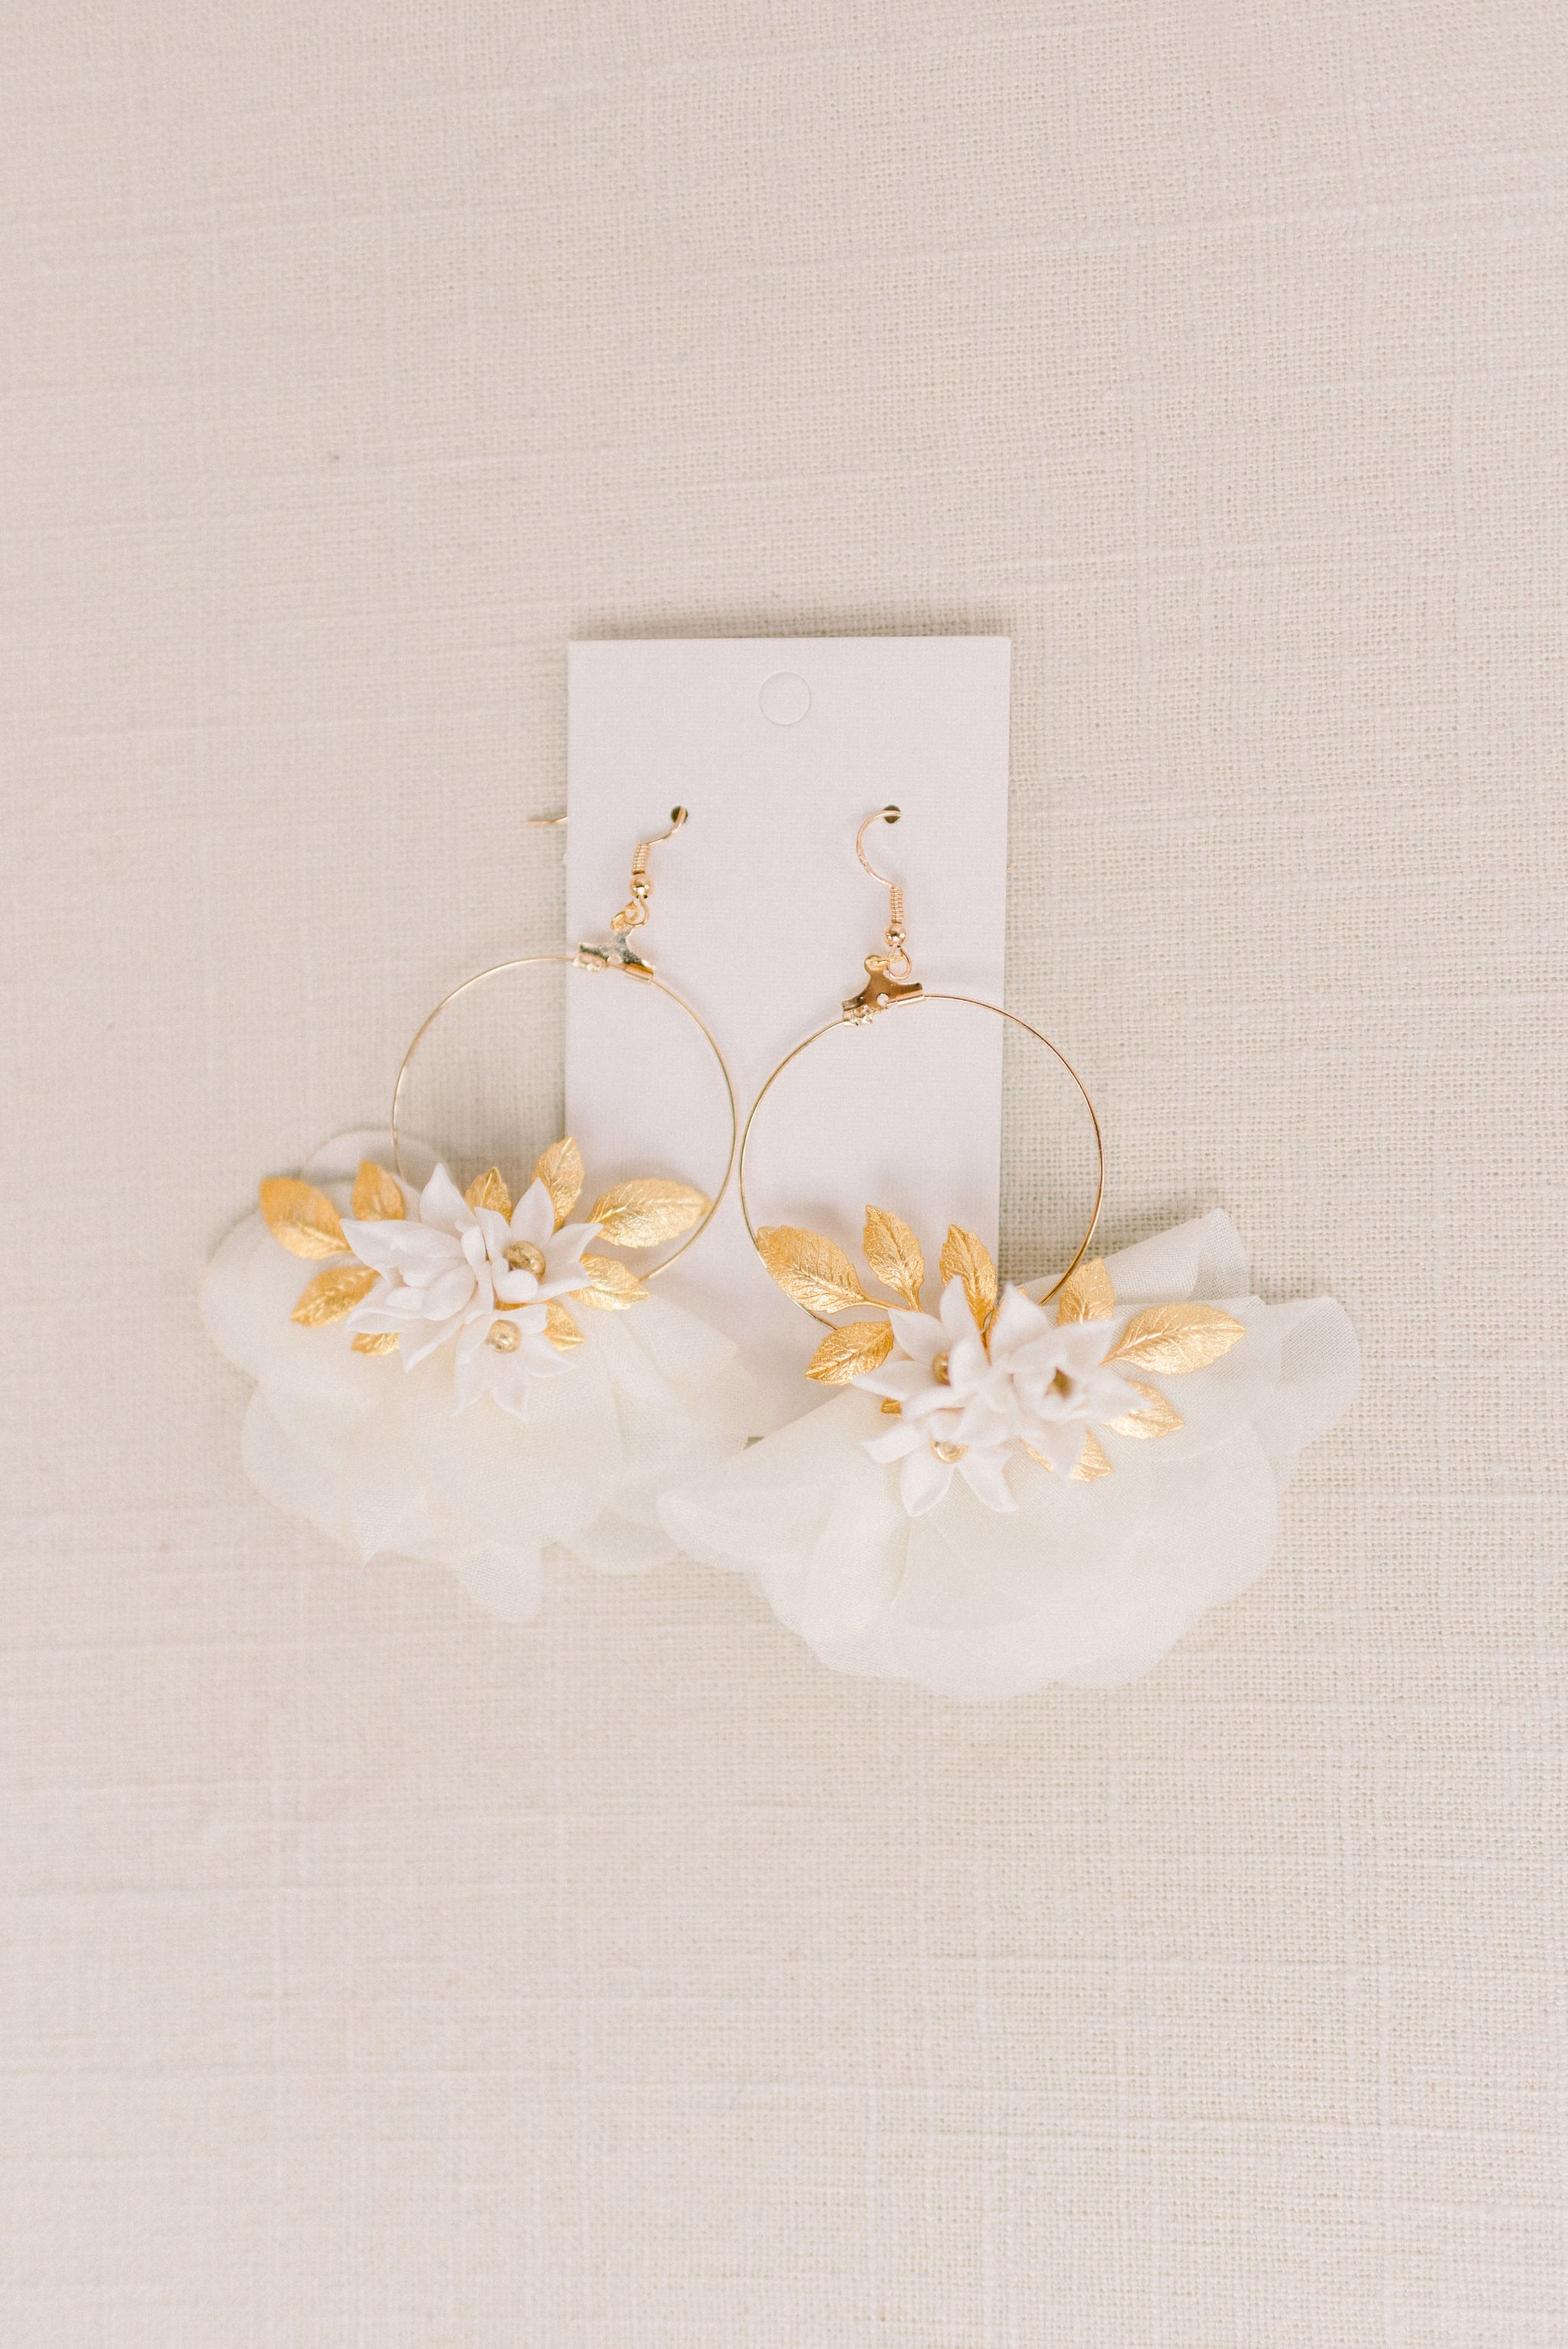 Chiffon floral earrings - Style 6001 - Tessa Kim